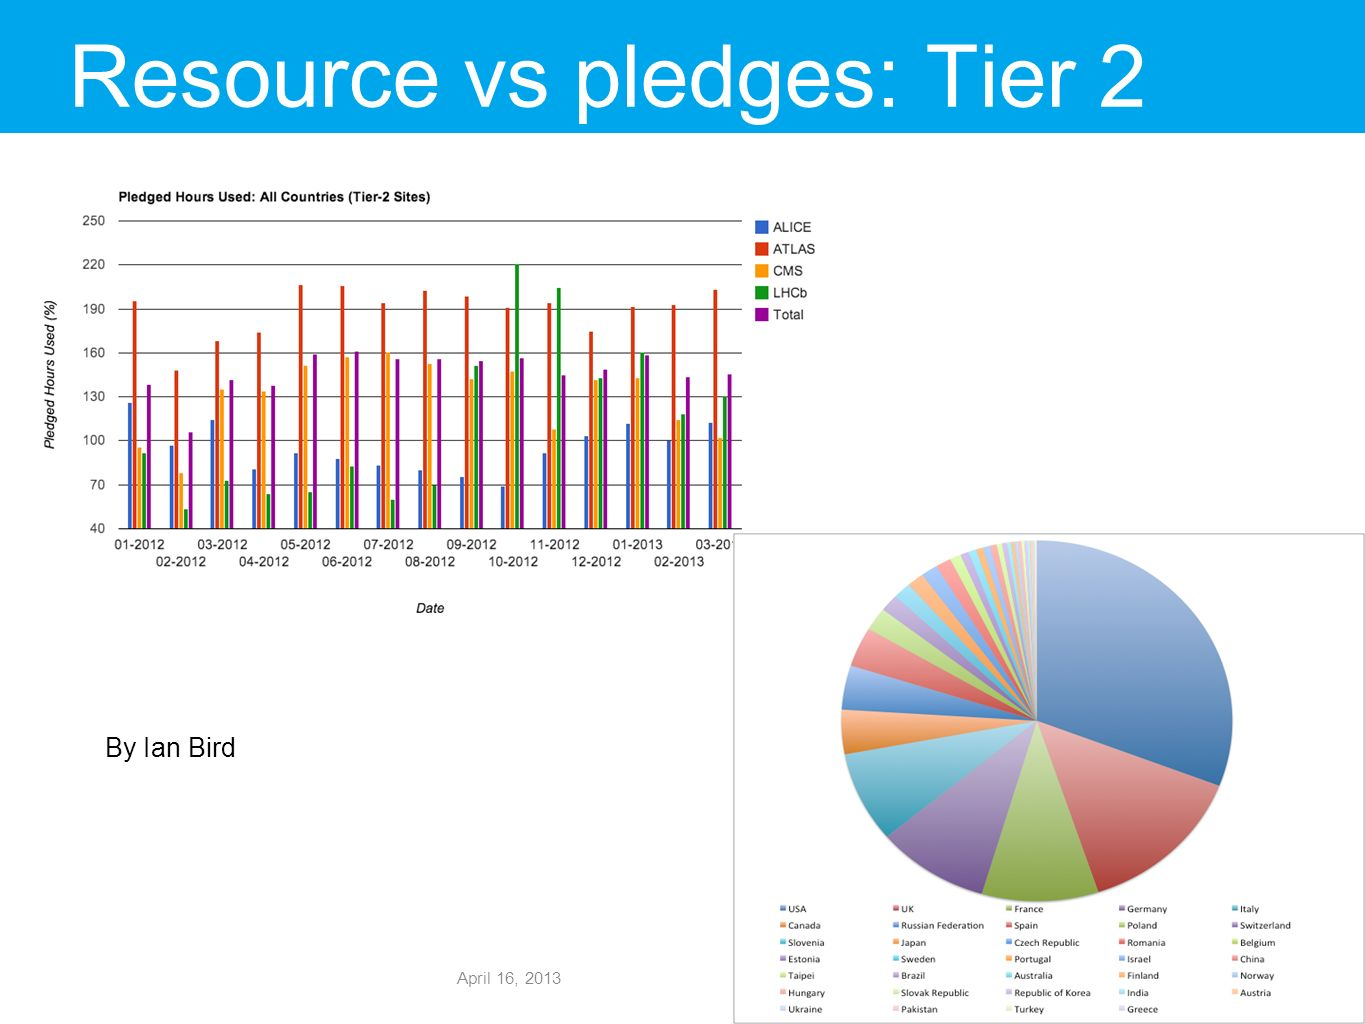 Resource vs pledges: Tier 2